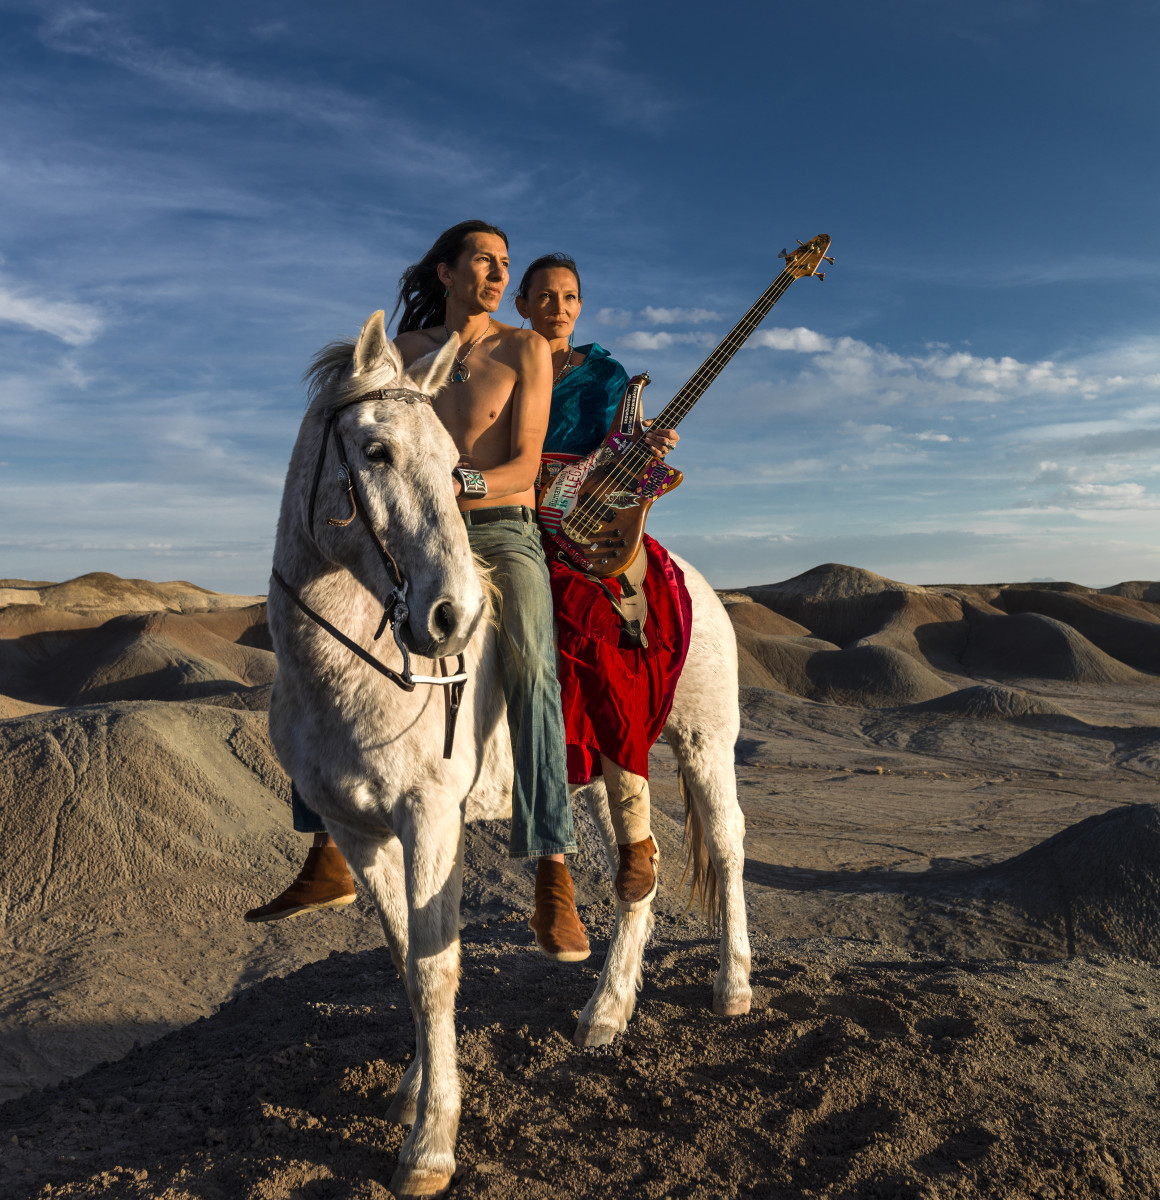 Navajo Punk rock band Sihasin is seen with their horse Moonshadow in a canyon in Cameron, Arizona. Sihasin comes from a long tradition of protest music and expouses traditional Navajo values to their audience. (Photo by Brent Stirton/Reportage for Le Figaro Magazine.)